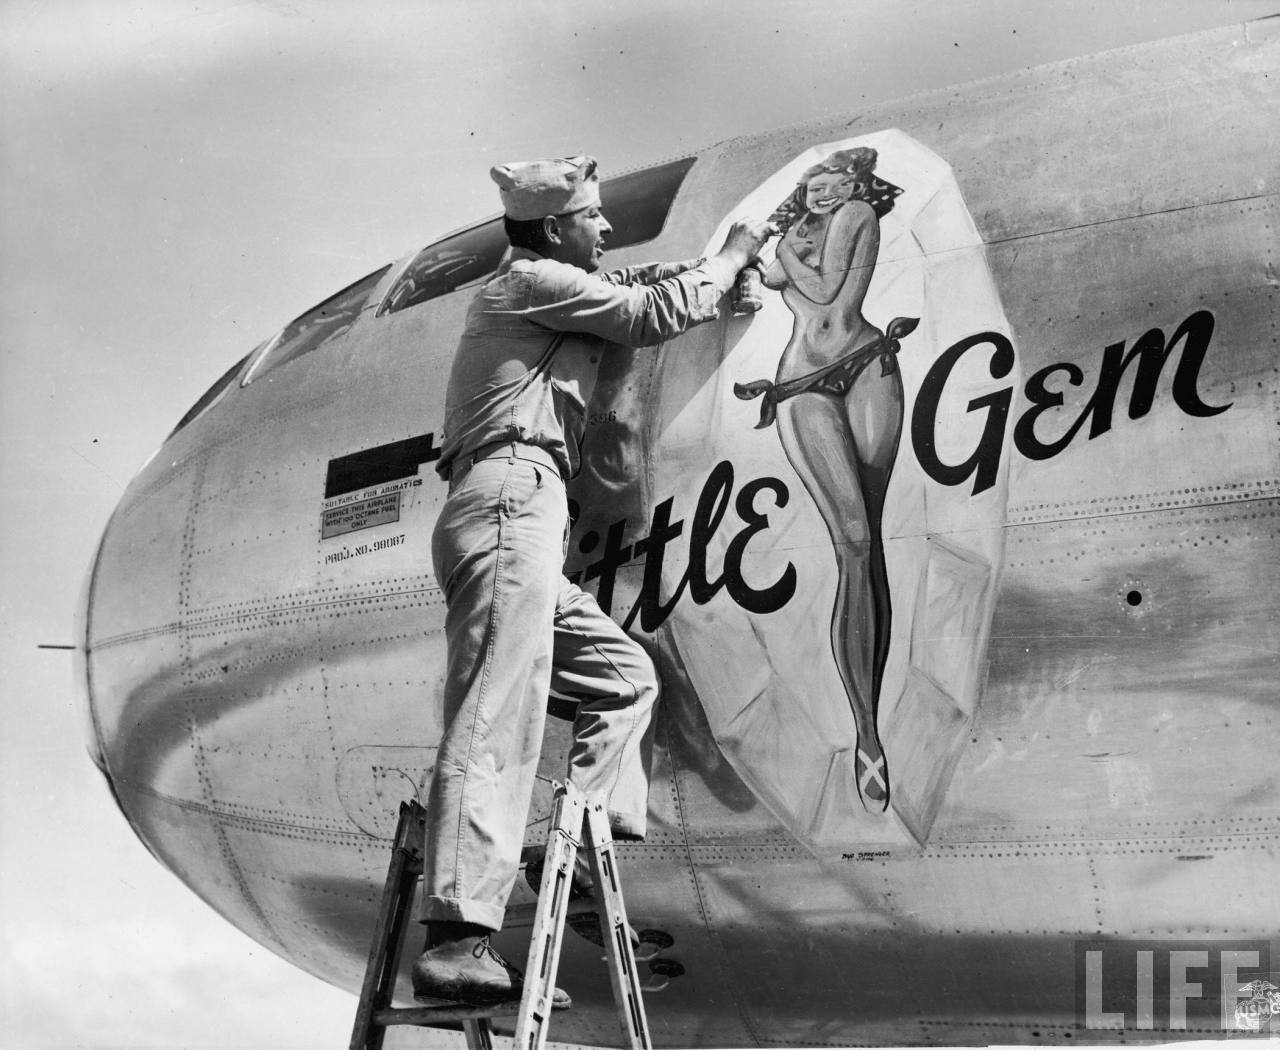 Fighting aircraft nose art pinup